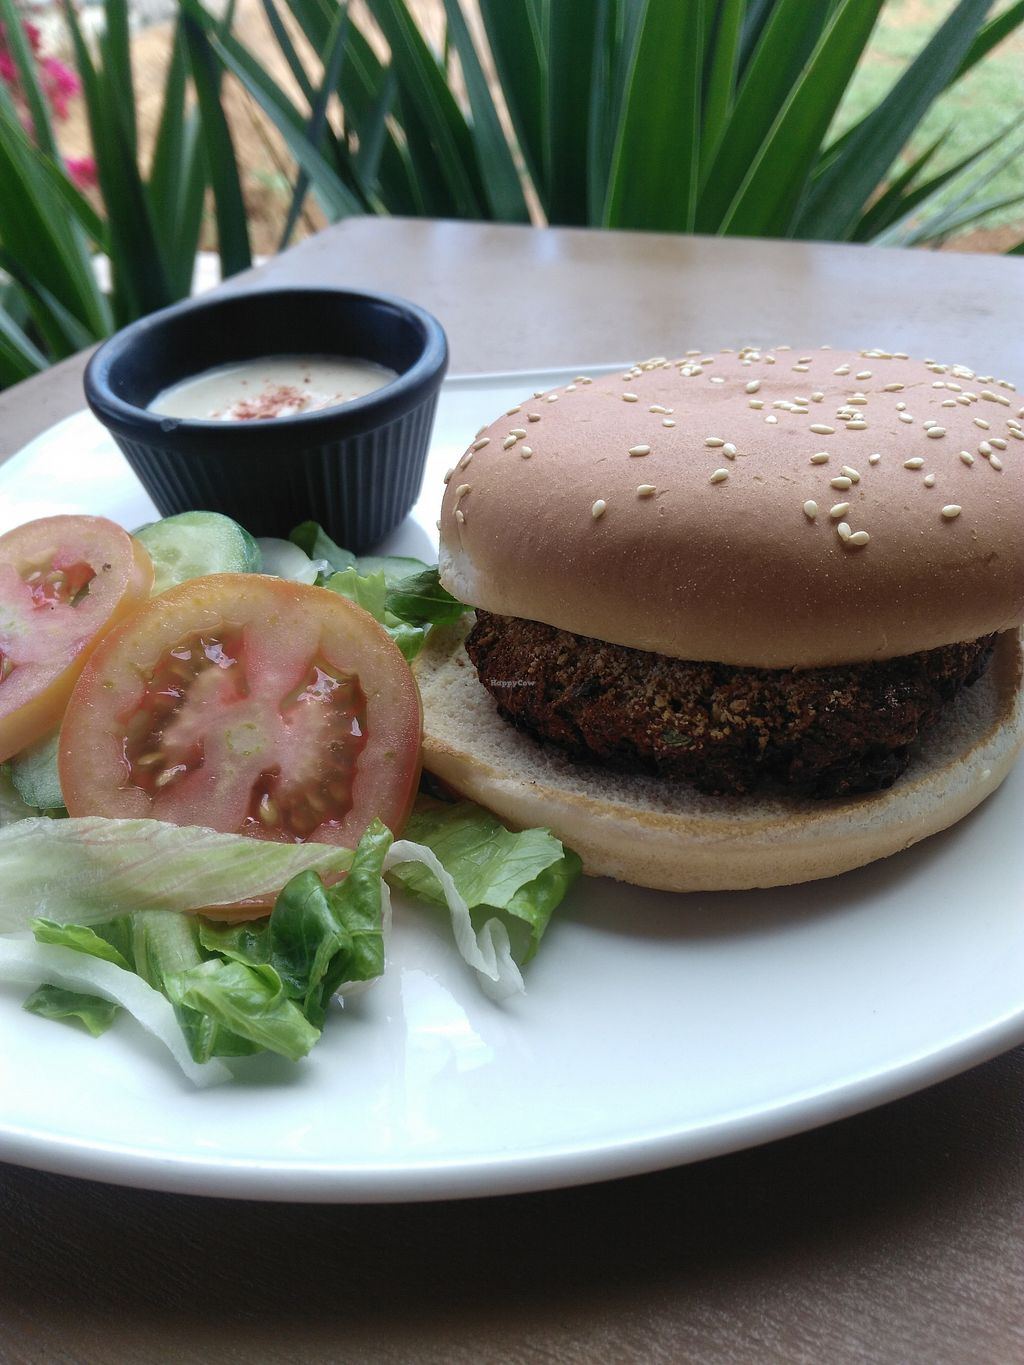 """Photo of Pig n' Whistle  by <a href=""""/members/profile/Emsglover"""">Emsglover</a> <br/>Spicy bean burger with hummus and salad <br/> April 12, 2018  - <a href='/contact/abuse/image/117345/384343'>Report</a>"""